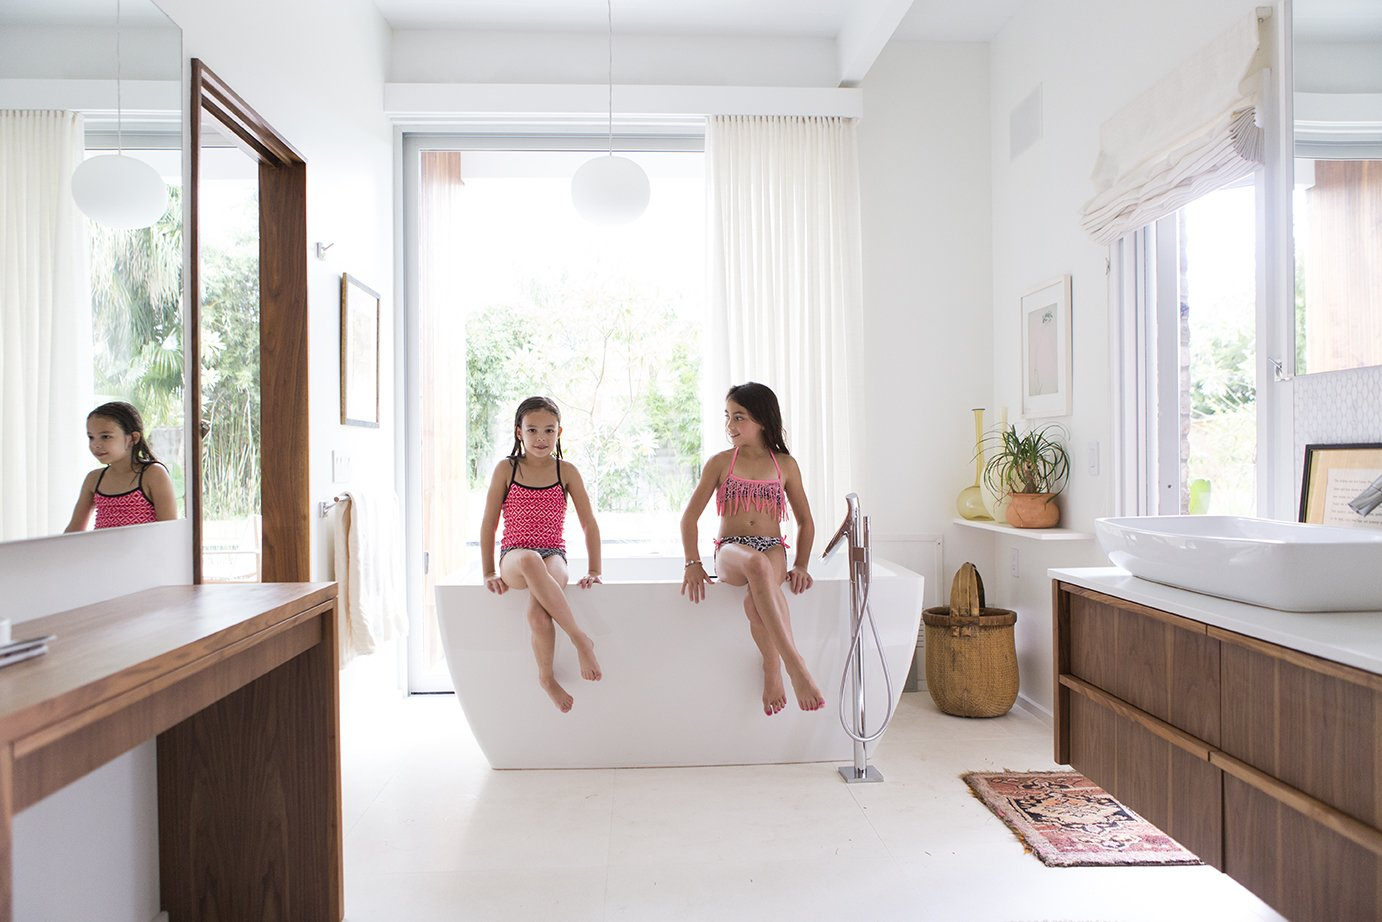 In the master bathroom, a BainUltra Essencia freestanding tub with an Axor Starck filler offers a perch for the couple's granddaughter Arabella and her cousin Alexandra. The built-in vanity is made of the same ApplePly material as the kitchen cabinetry. Tagged: Bath Room, Freestanding Tub, Pendant Lighting, Vessel Sink, and Wood Counter.  Emerald Street Residence by Dwell from Back to the Garden